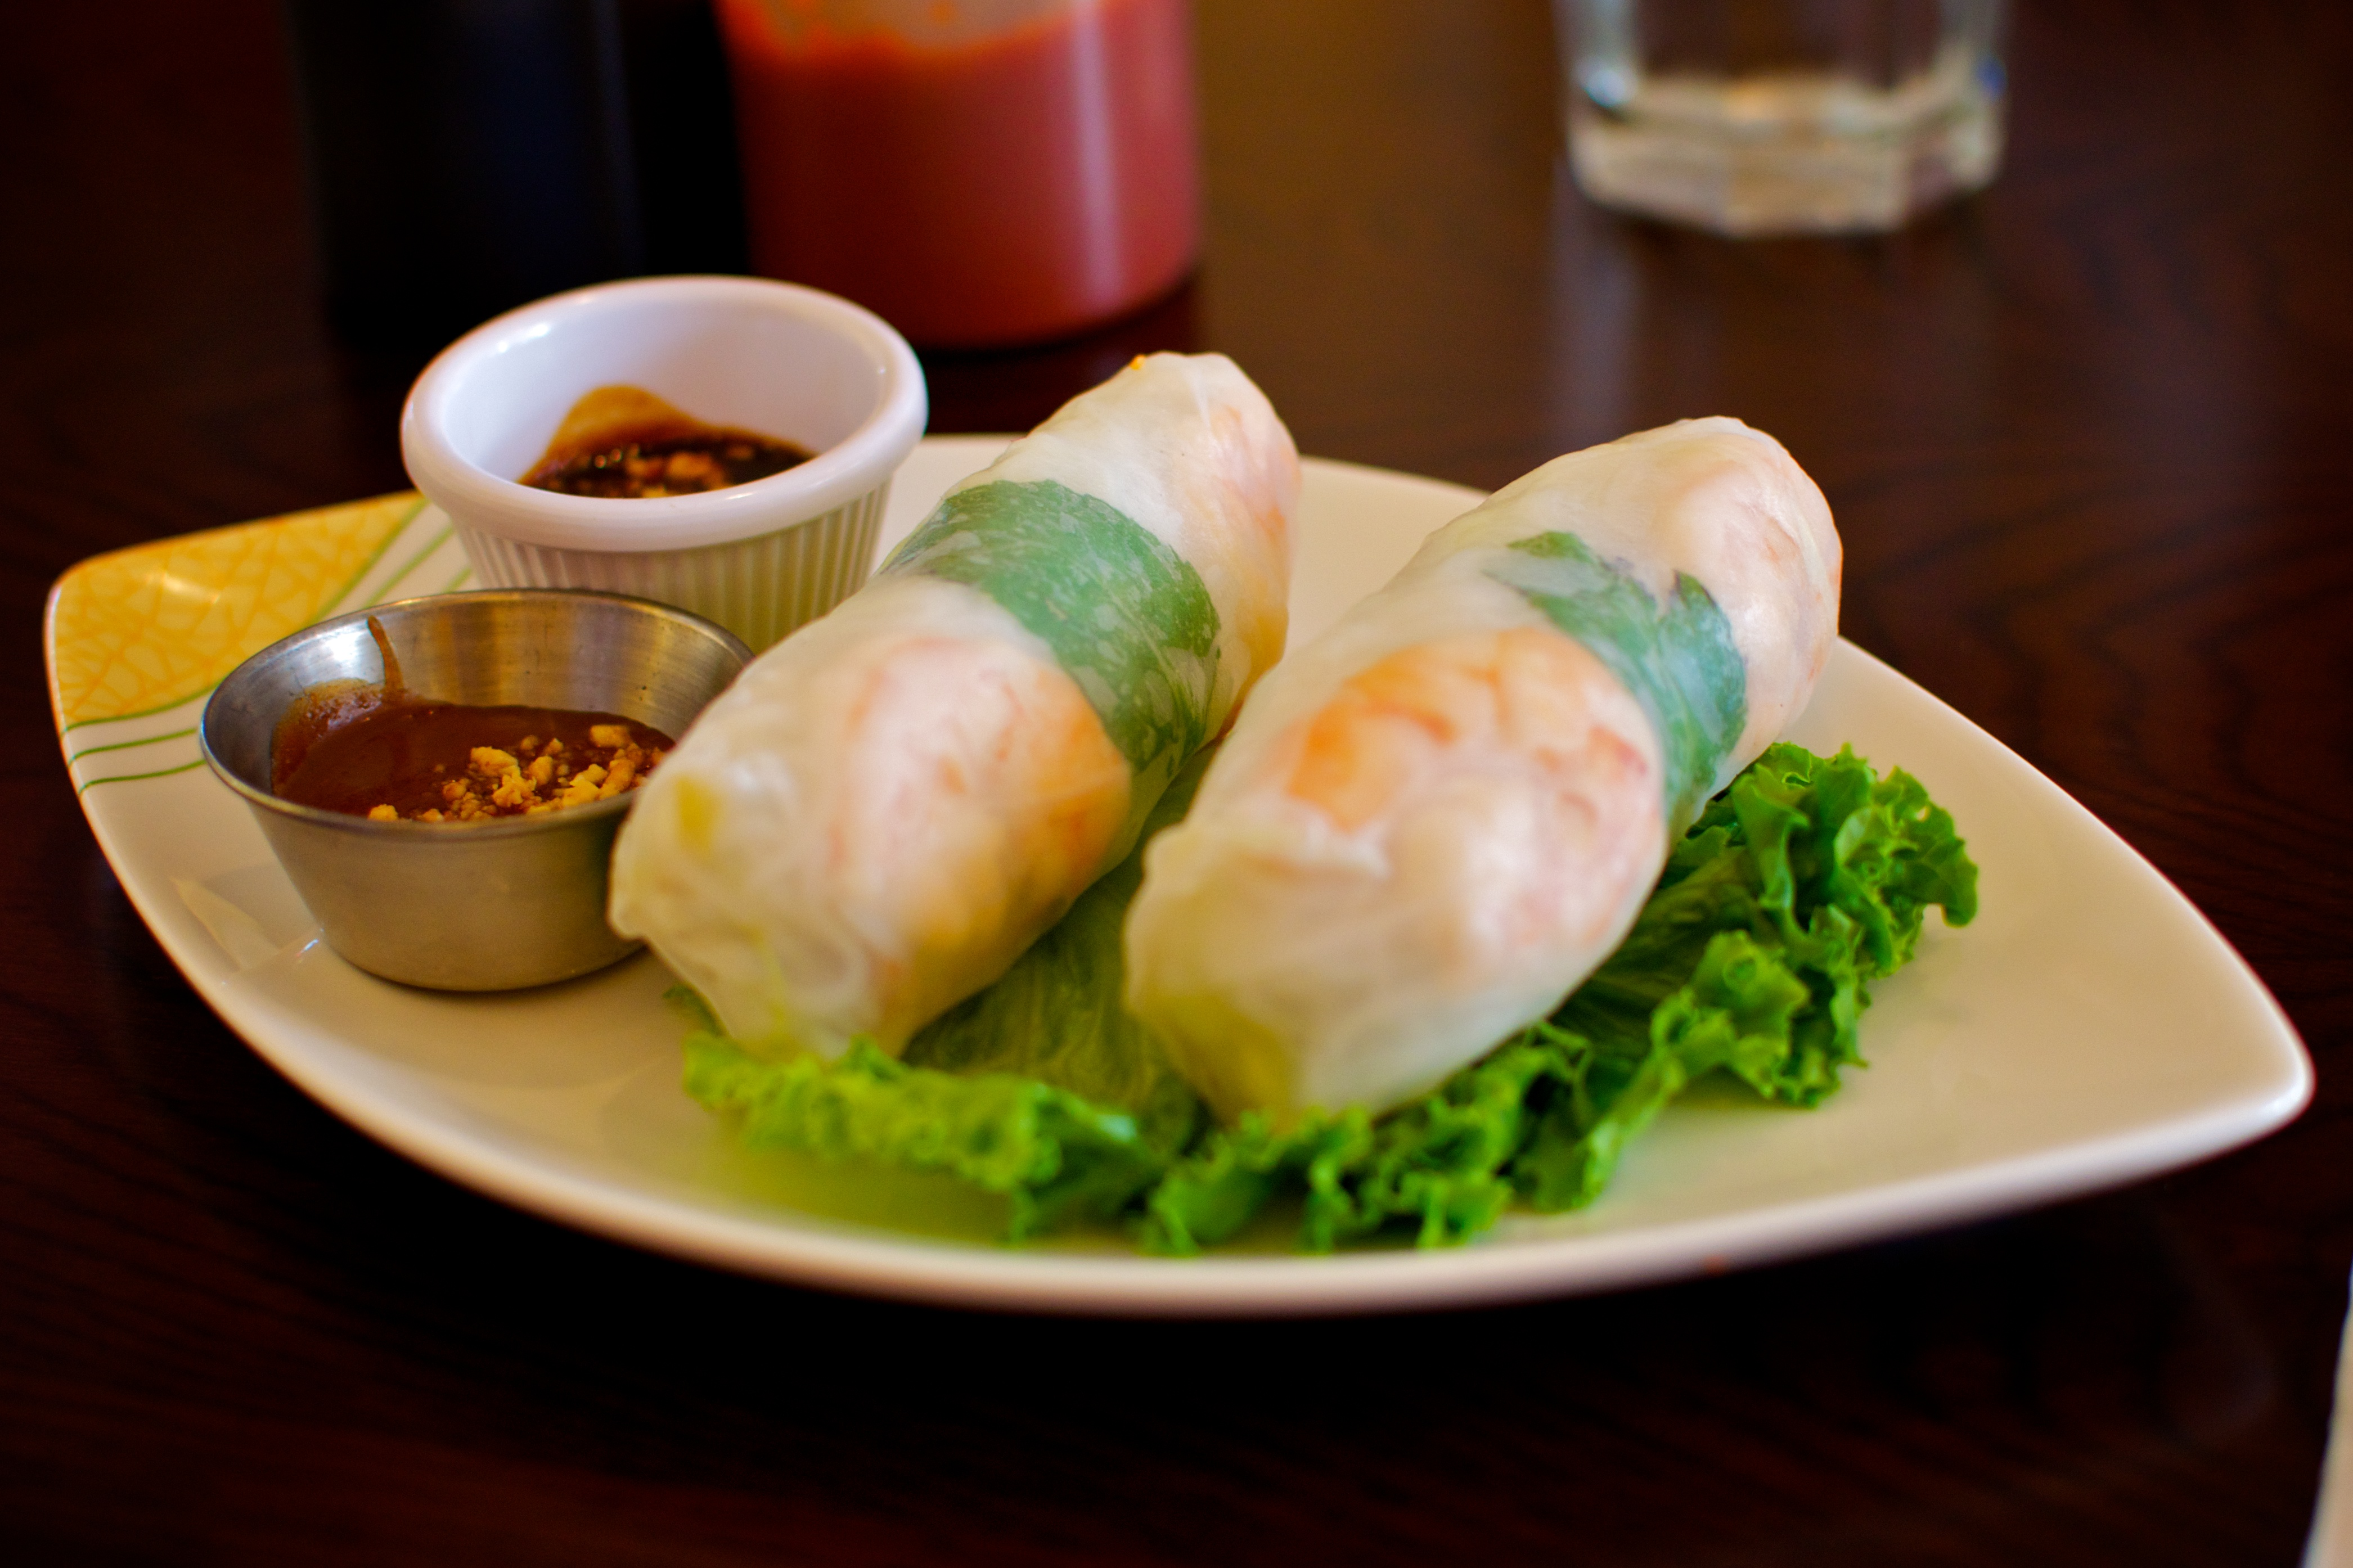 Vietnamese food: 40 delicious dishes to try in Vietnam | CNN Travel